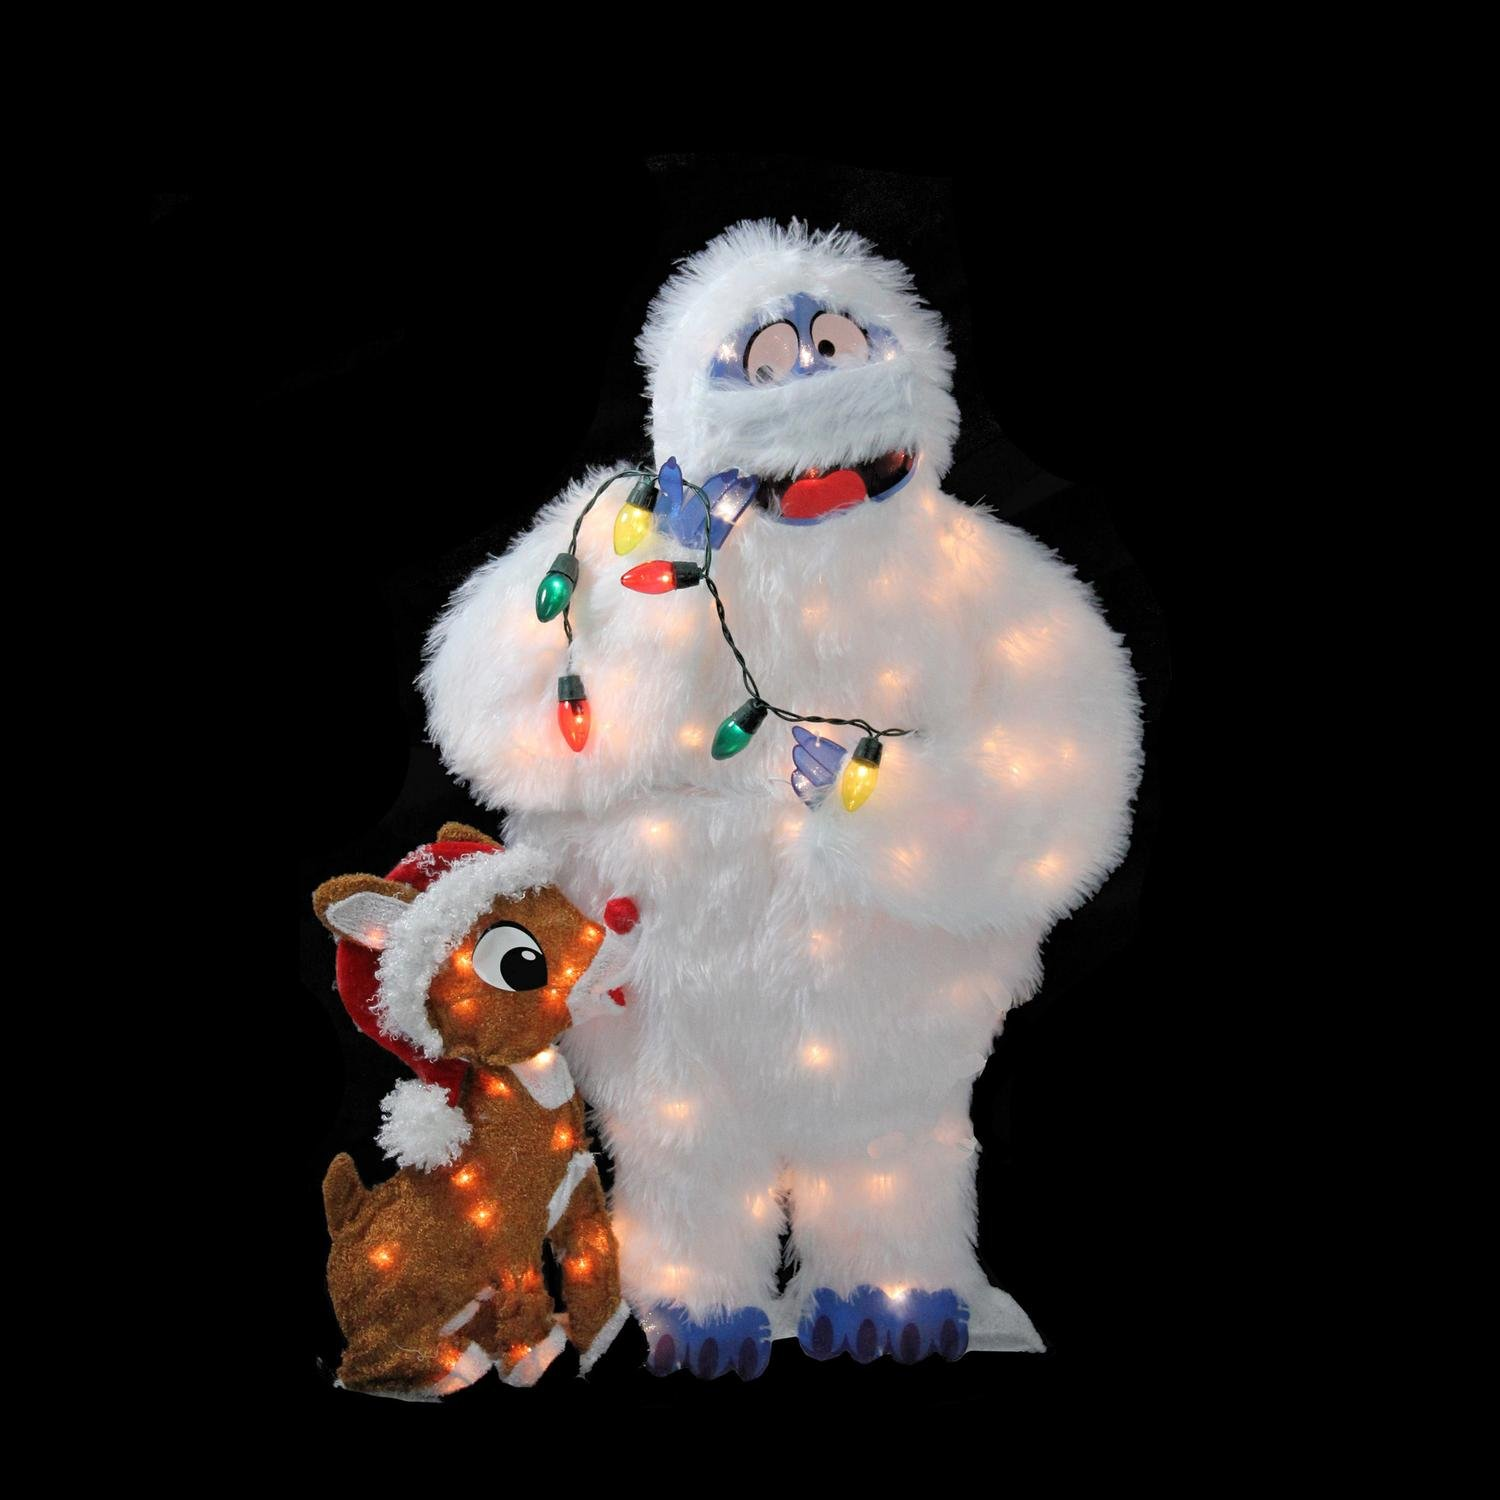 Rudolph the Red-Nosed Reindeer PW 20305 Rudolph and Bumble 2-D Outdoor Decoration - 32'' Pre-lit by Rudolph the Red Nosed Reindeer (Image #2)